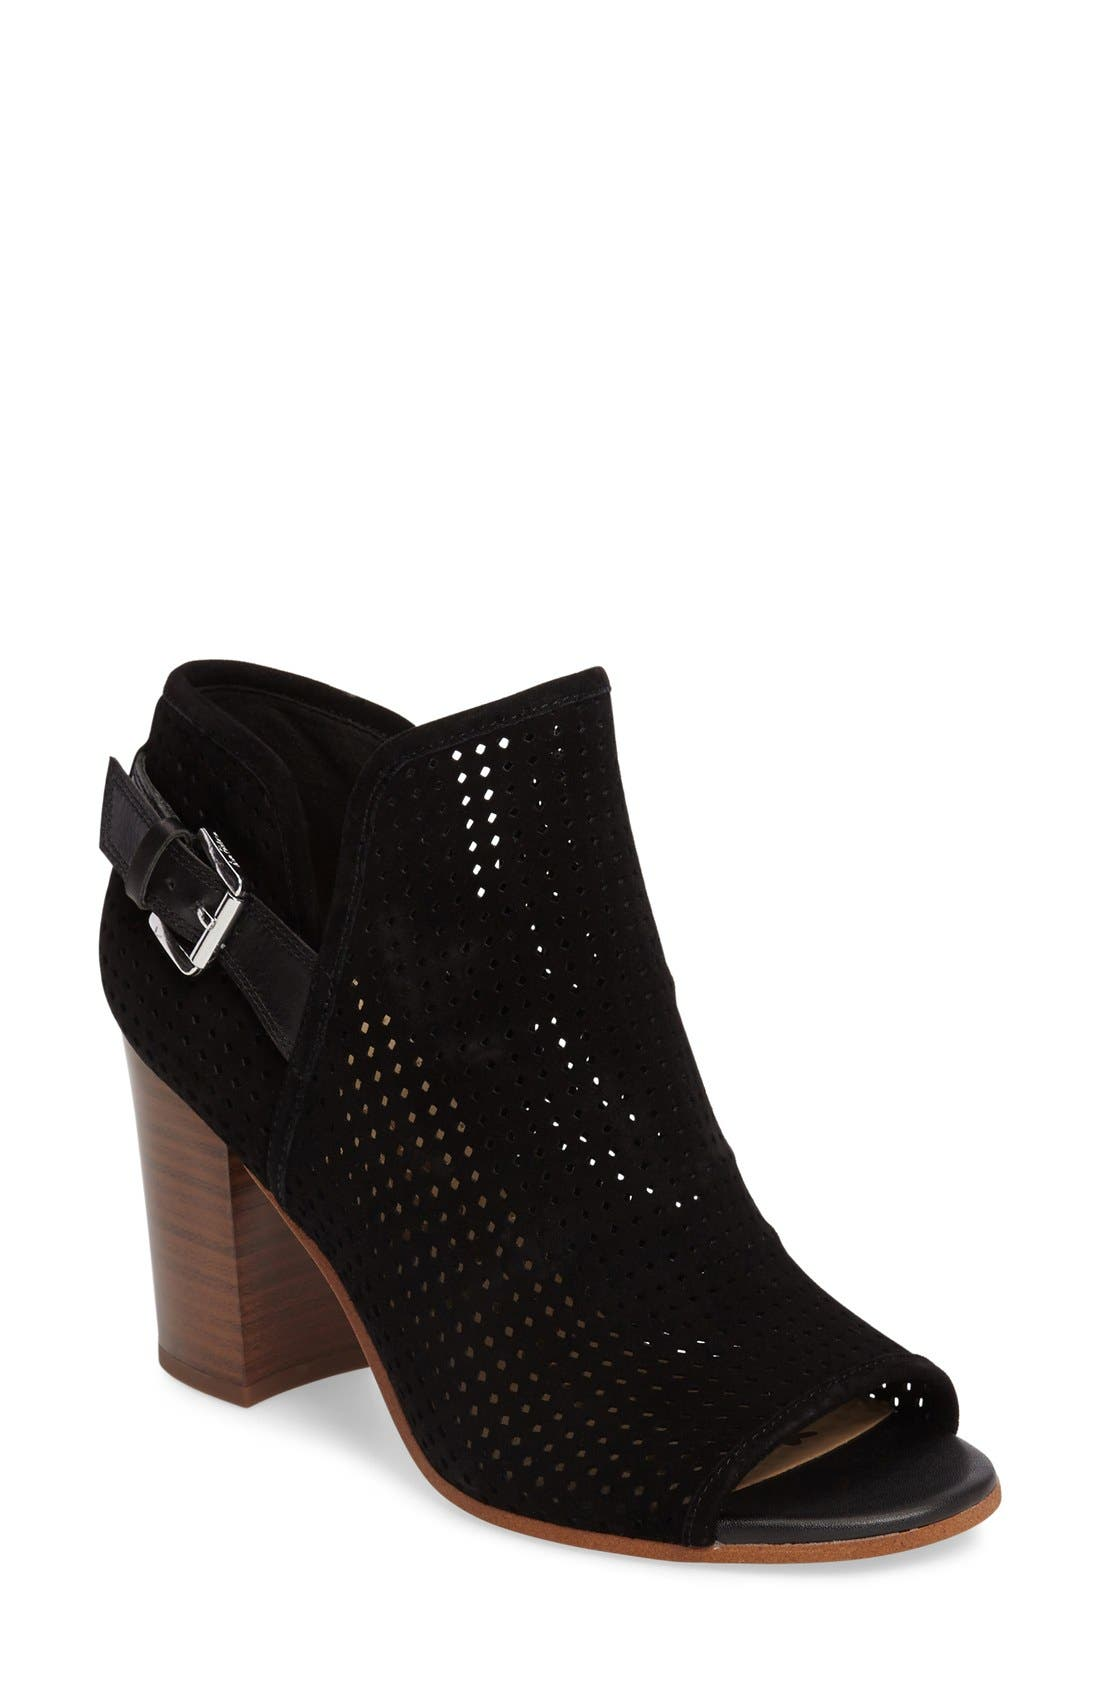 Alternate Image 1 Selected - Sam Edelman Easton Perforated Open Toe Bootie (Women)